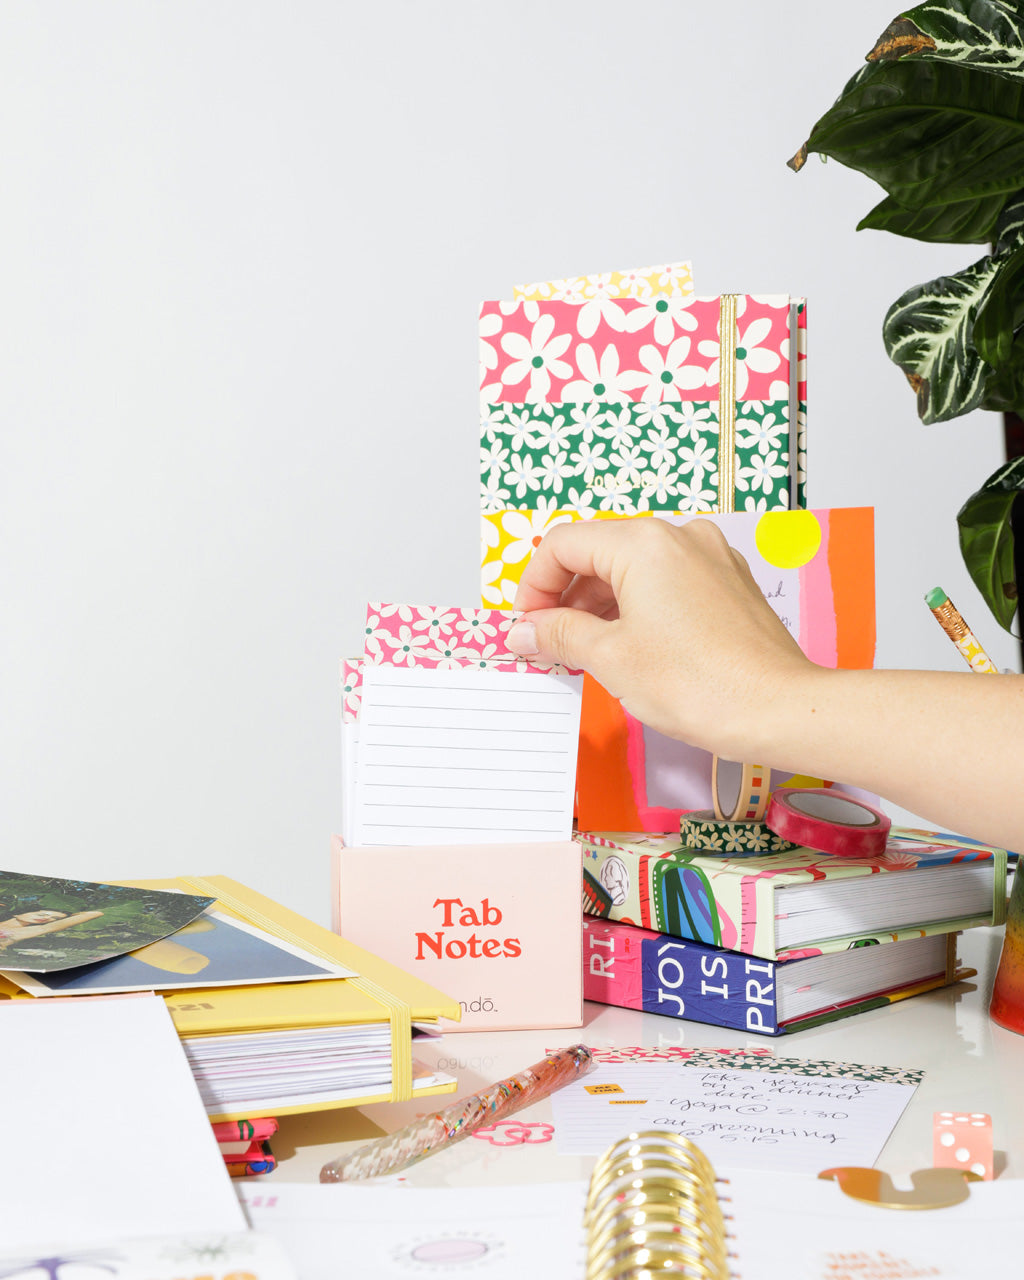 lifestyle image of tab notes shown with other bando products on a desk